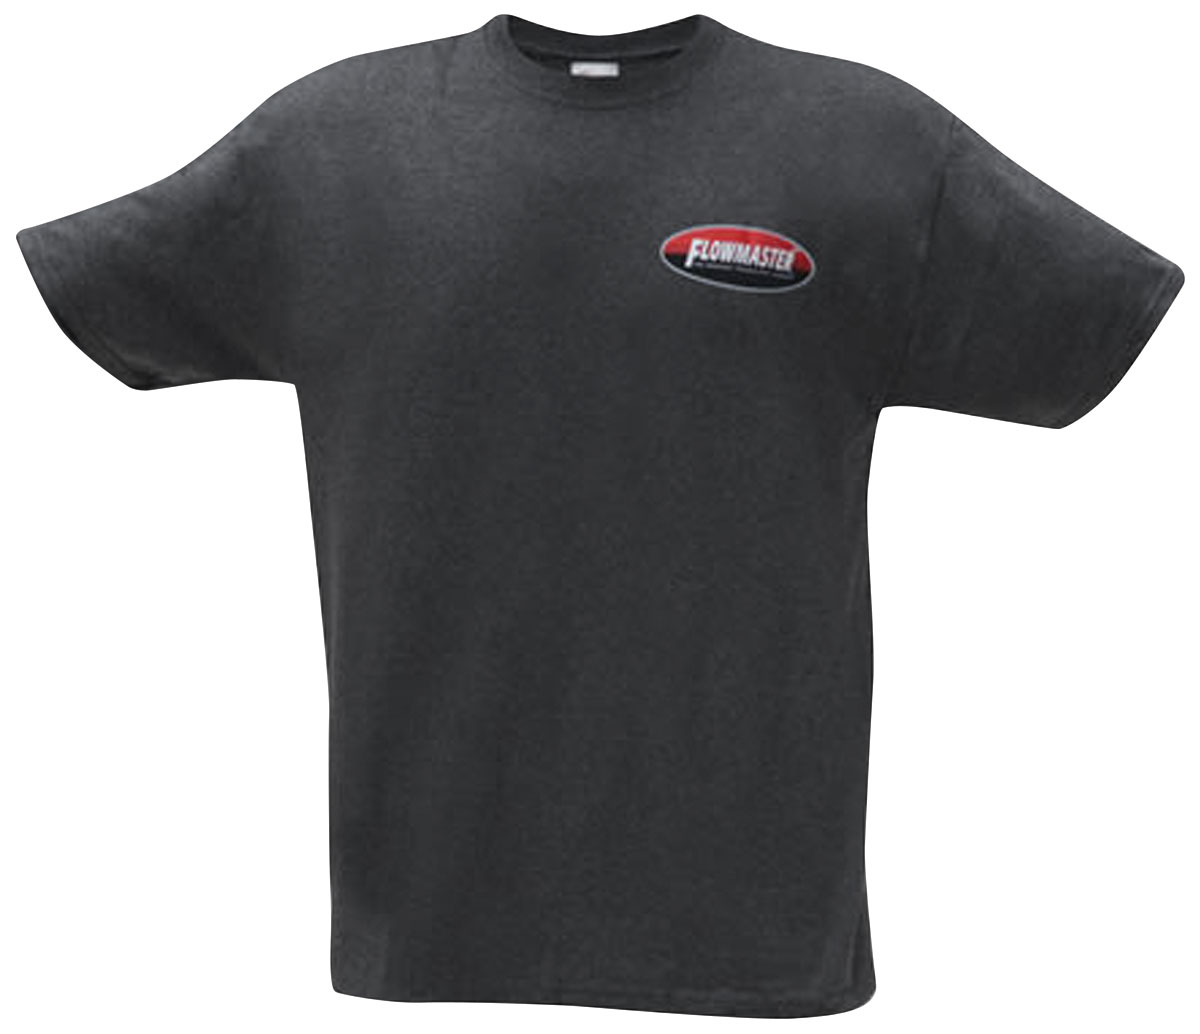 Shirt, Flowmaster Oval Tee, Charcoal